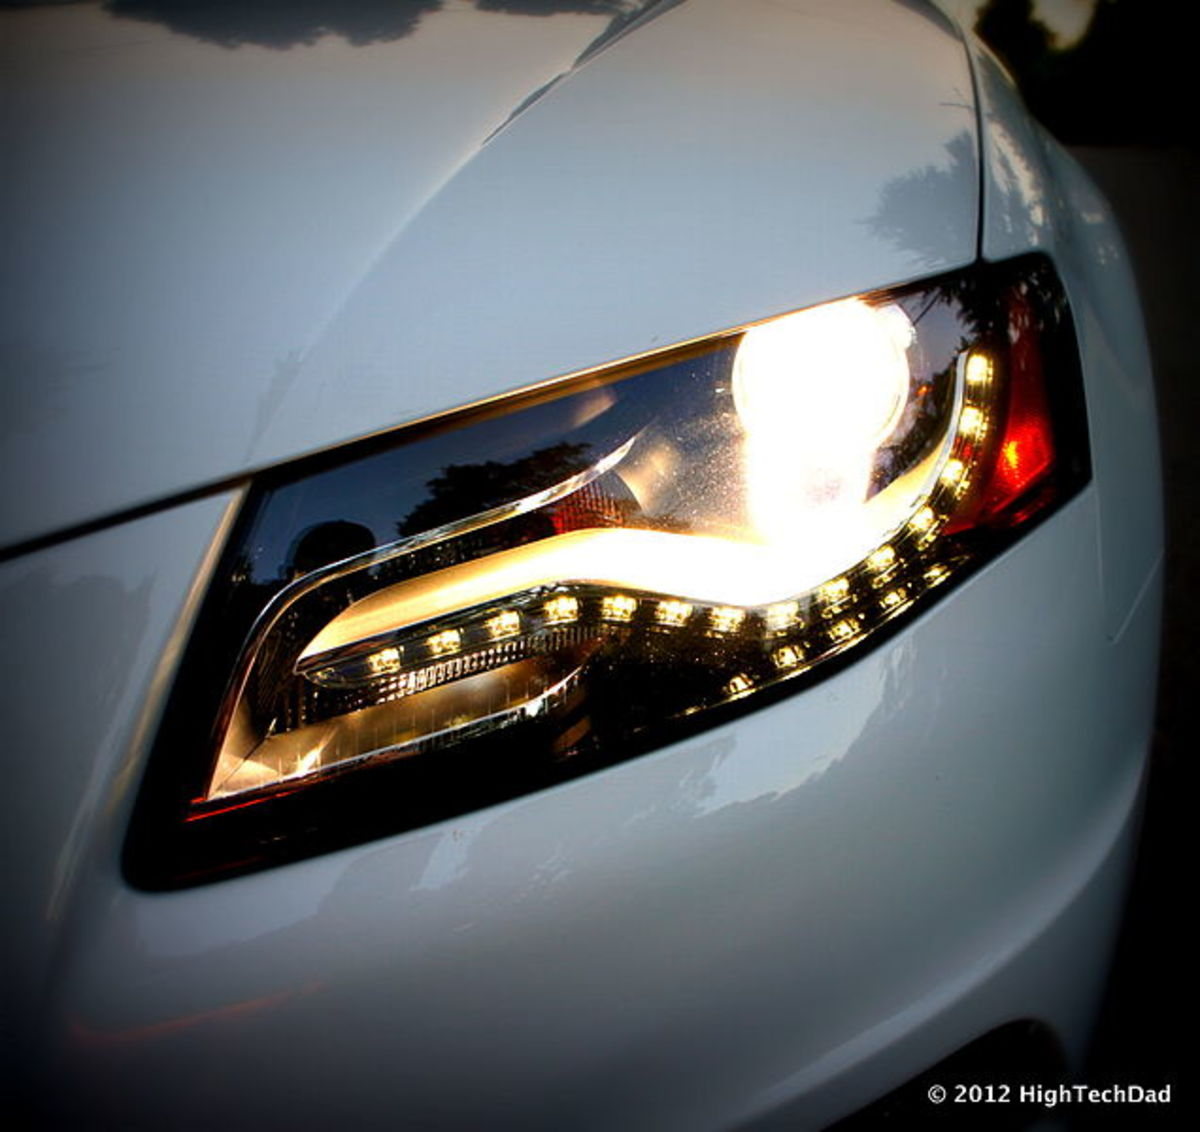 Leaving your headlights on or other electrical device after shutting off the engine will discharge your battery.